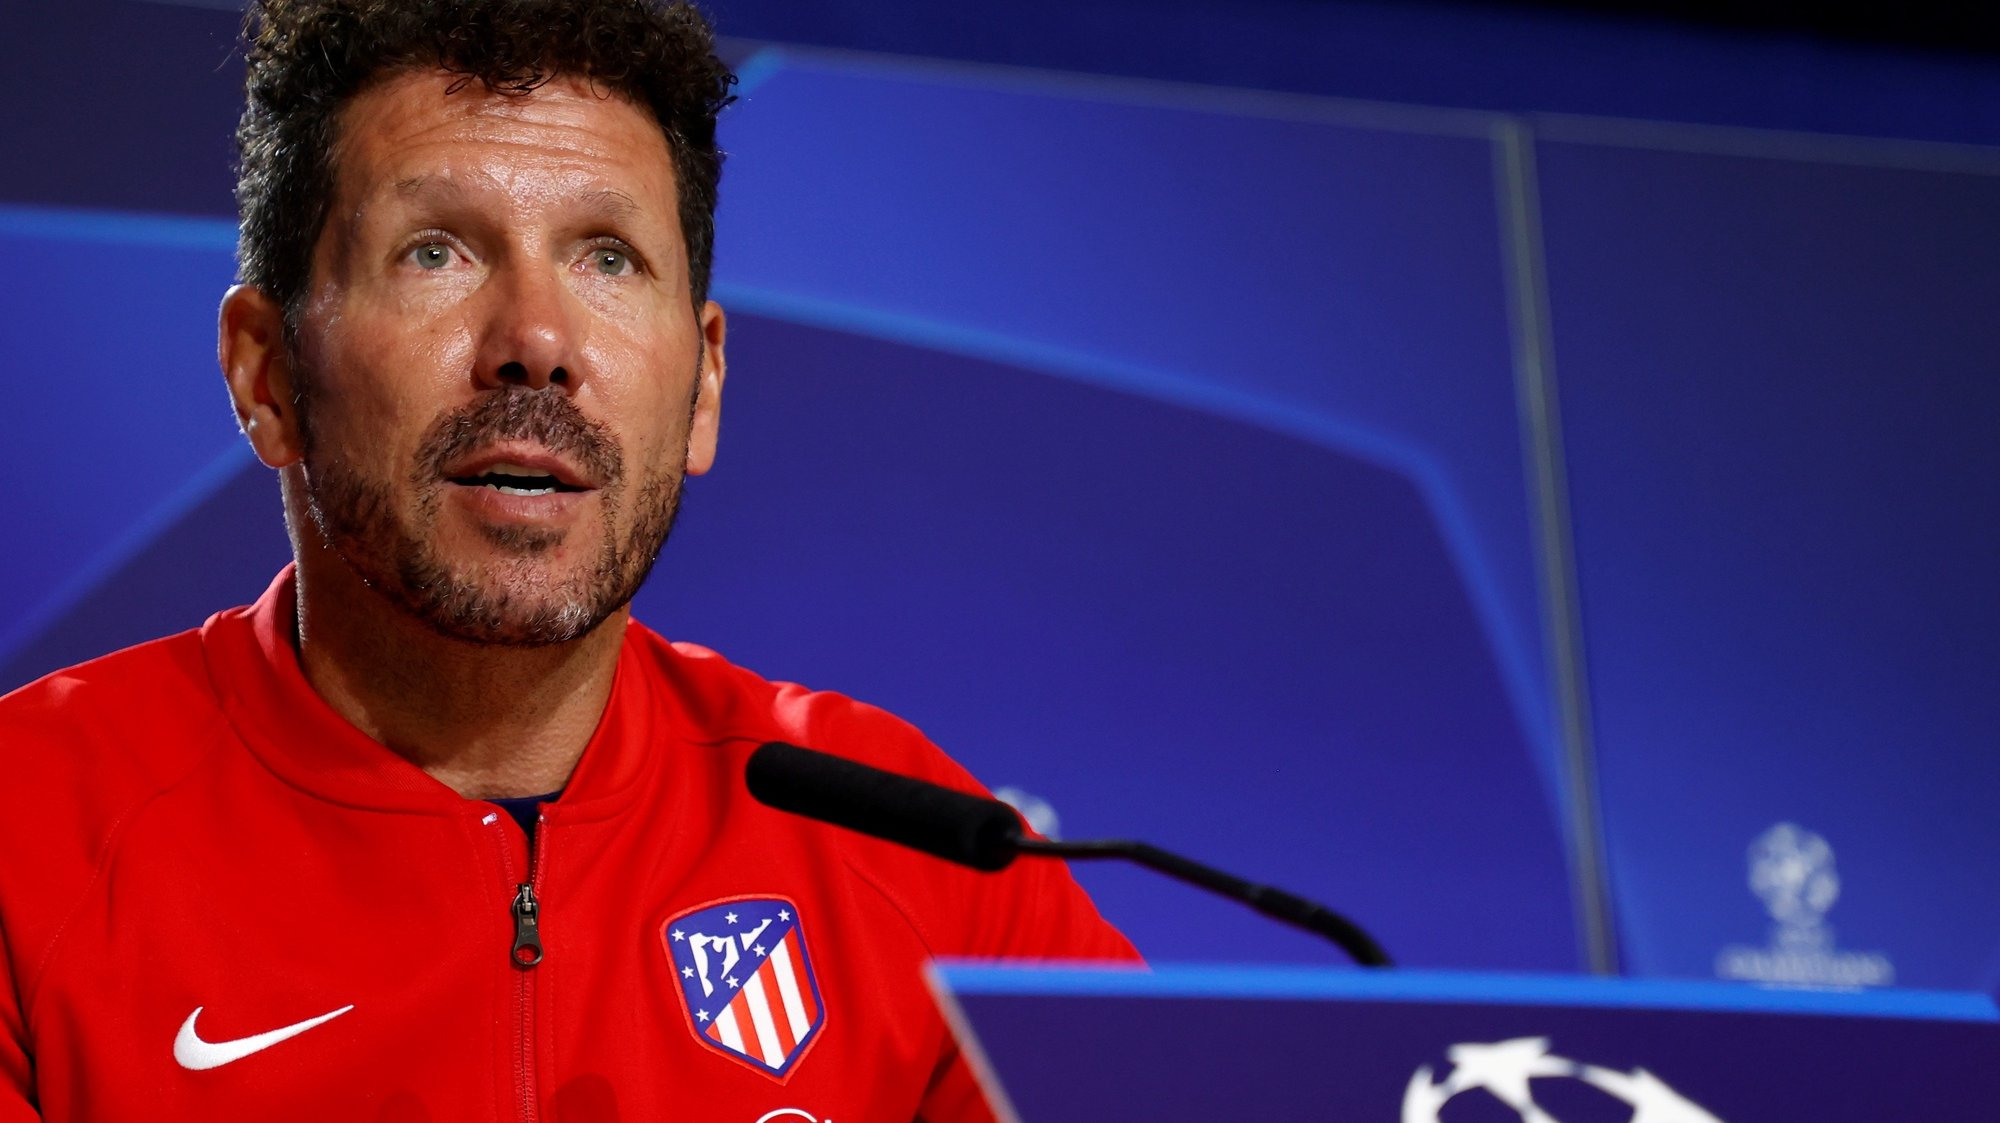 epa09467396 A handout photo made available by Spanish La Liga soccer club Atletico Madrid of head coach Diego Simeone speaking during a press conference at Metropolitano stadium in Madrid, Spain, 14 September 2021. Atletico Madrid will face FC Porto in their UEFA Champions League group B soccer match on 15 September 2021.  EPA/Atletico Madrid HANDOUT  HANDOUT EDITORIAL USE ONLY/NO SALES